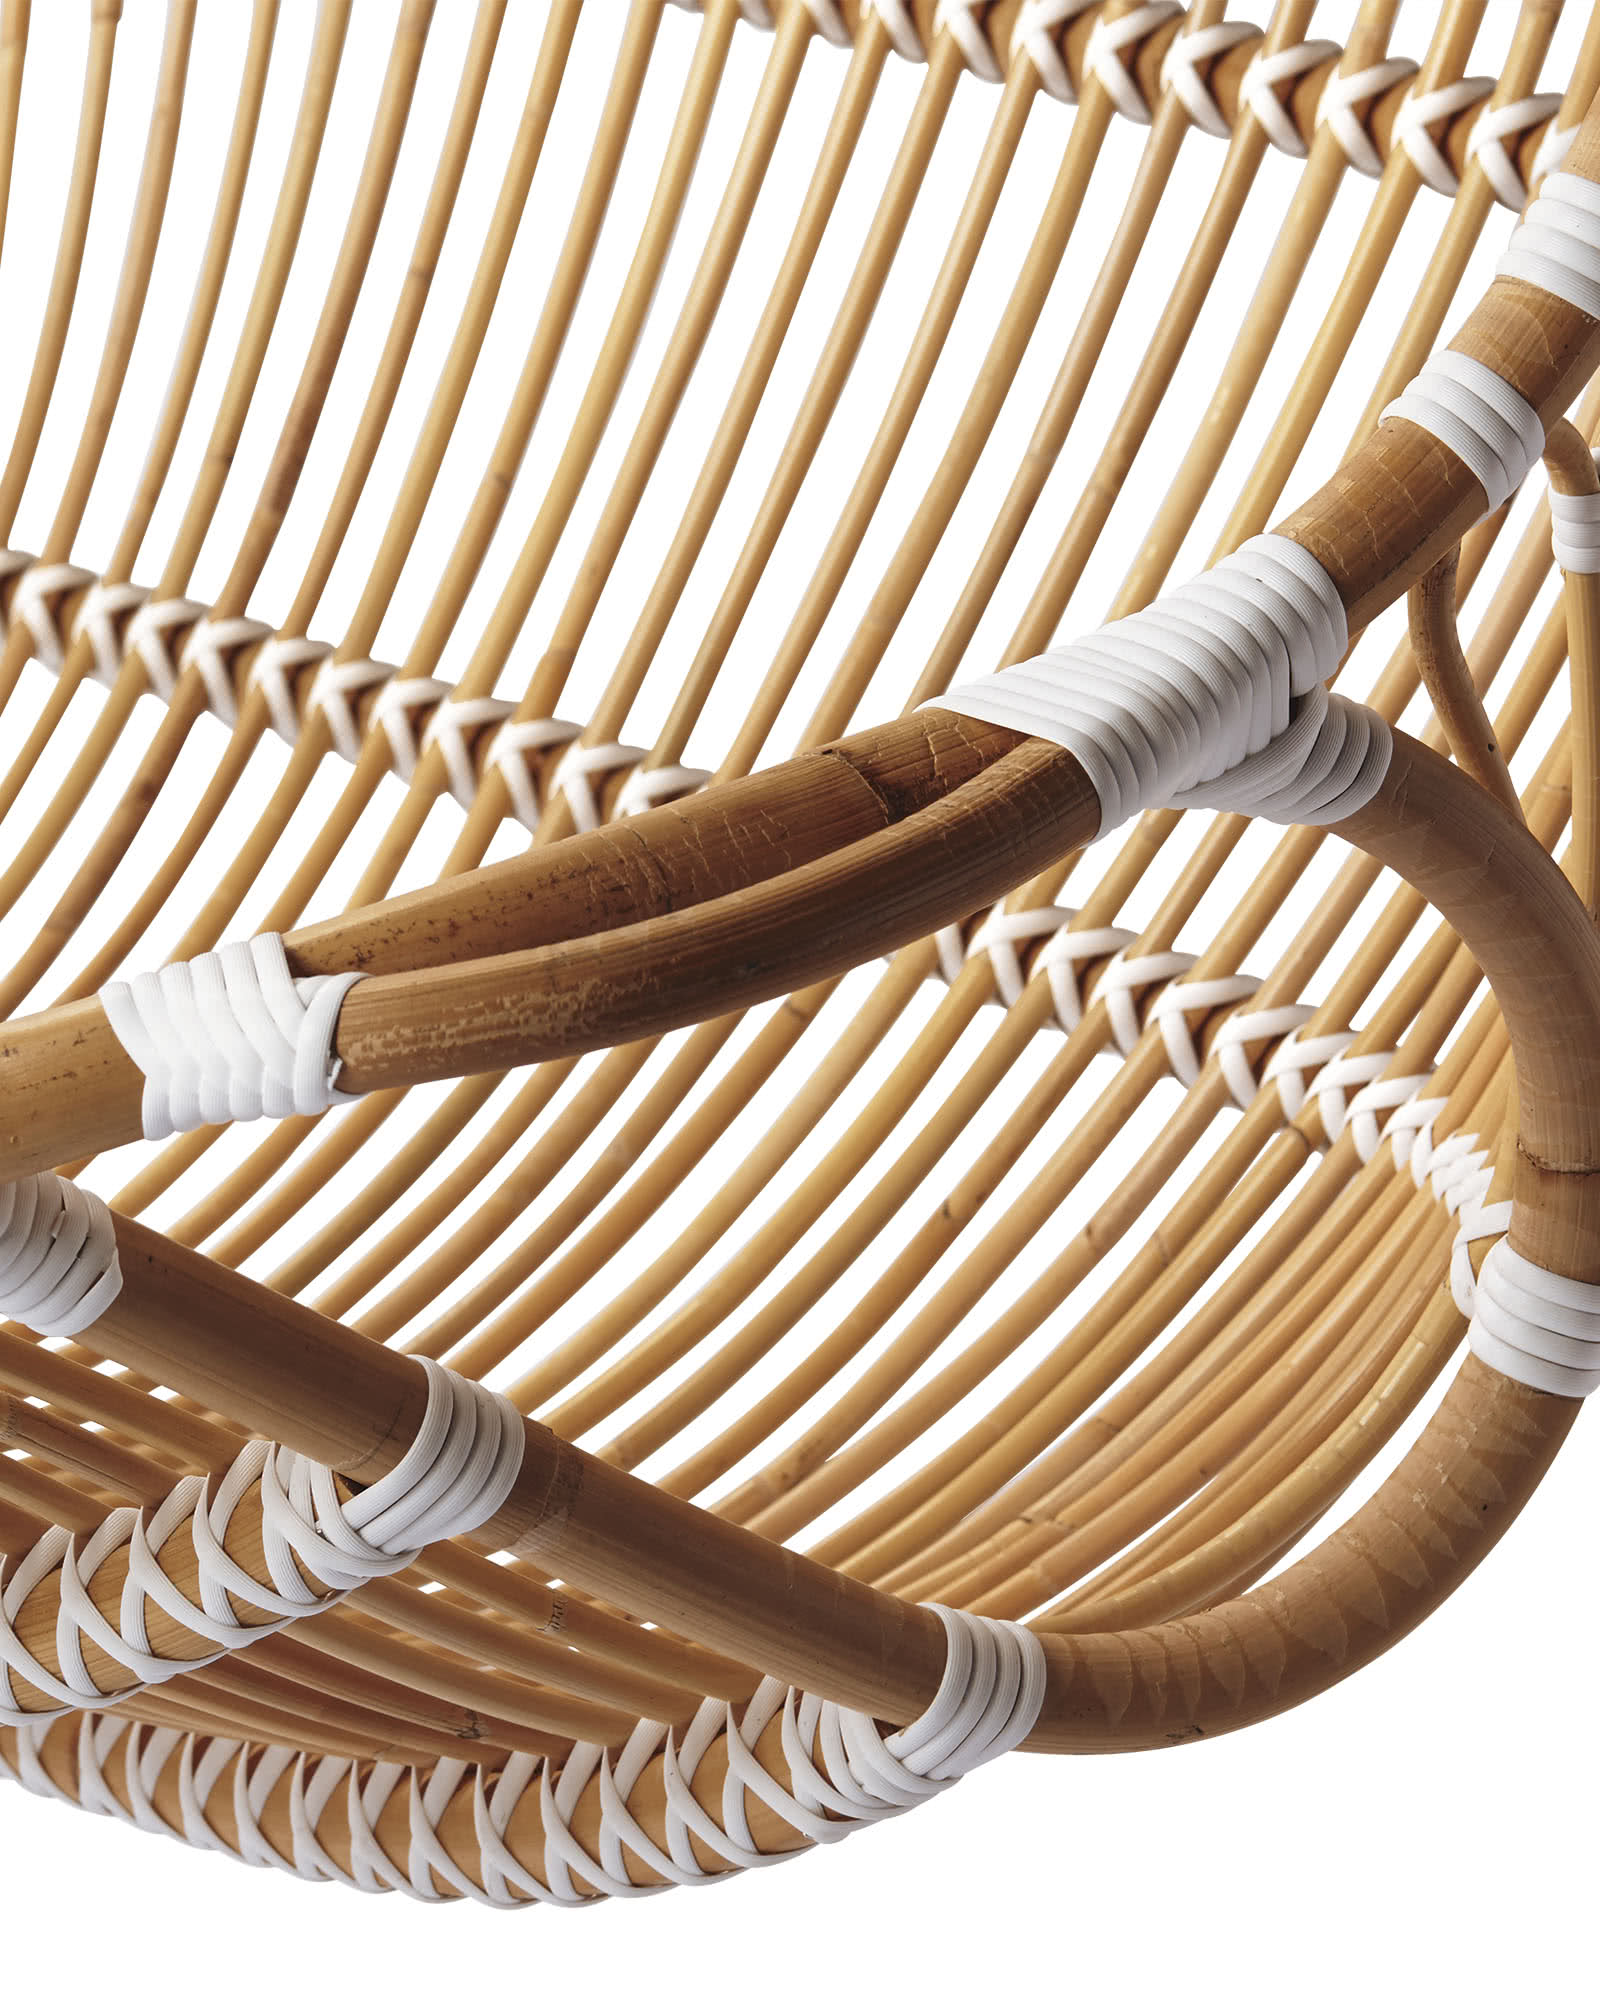 Double Hanging Rattan Chair - Chairs   Serena and Lily